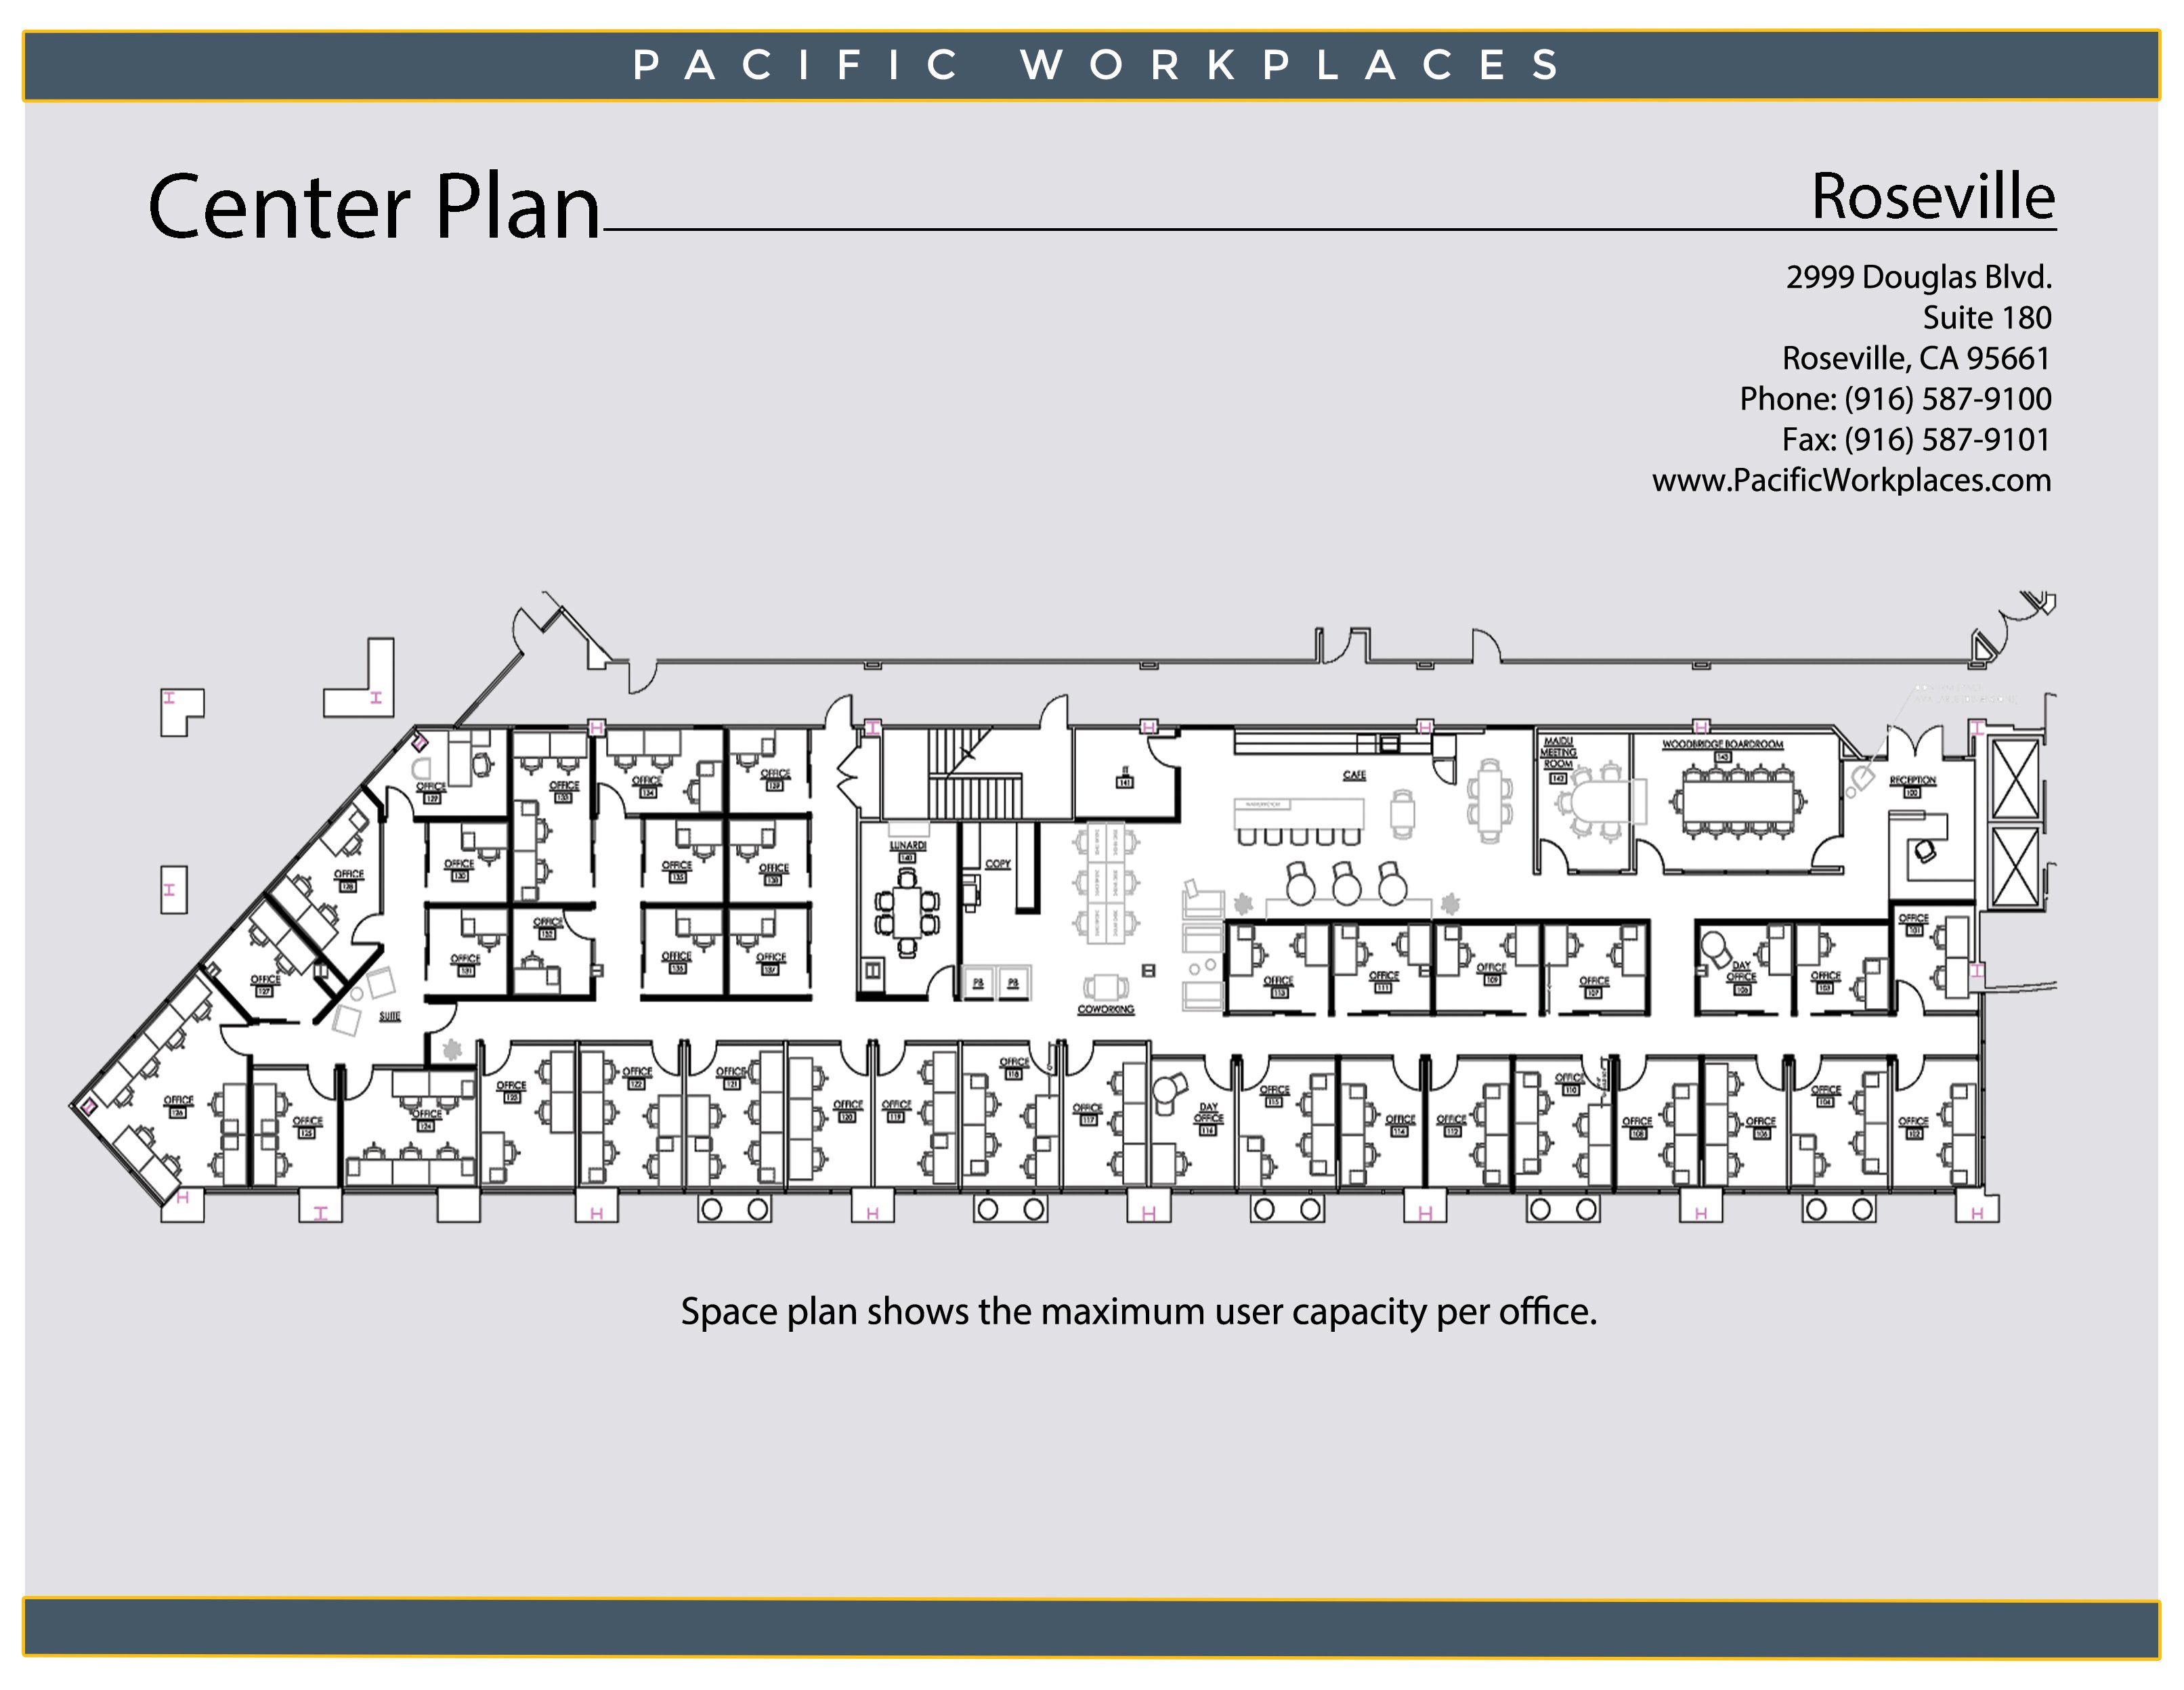 Pacific Workplaces Roseville Floor Plan 030320